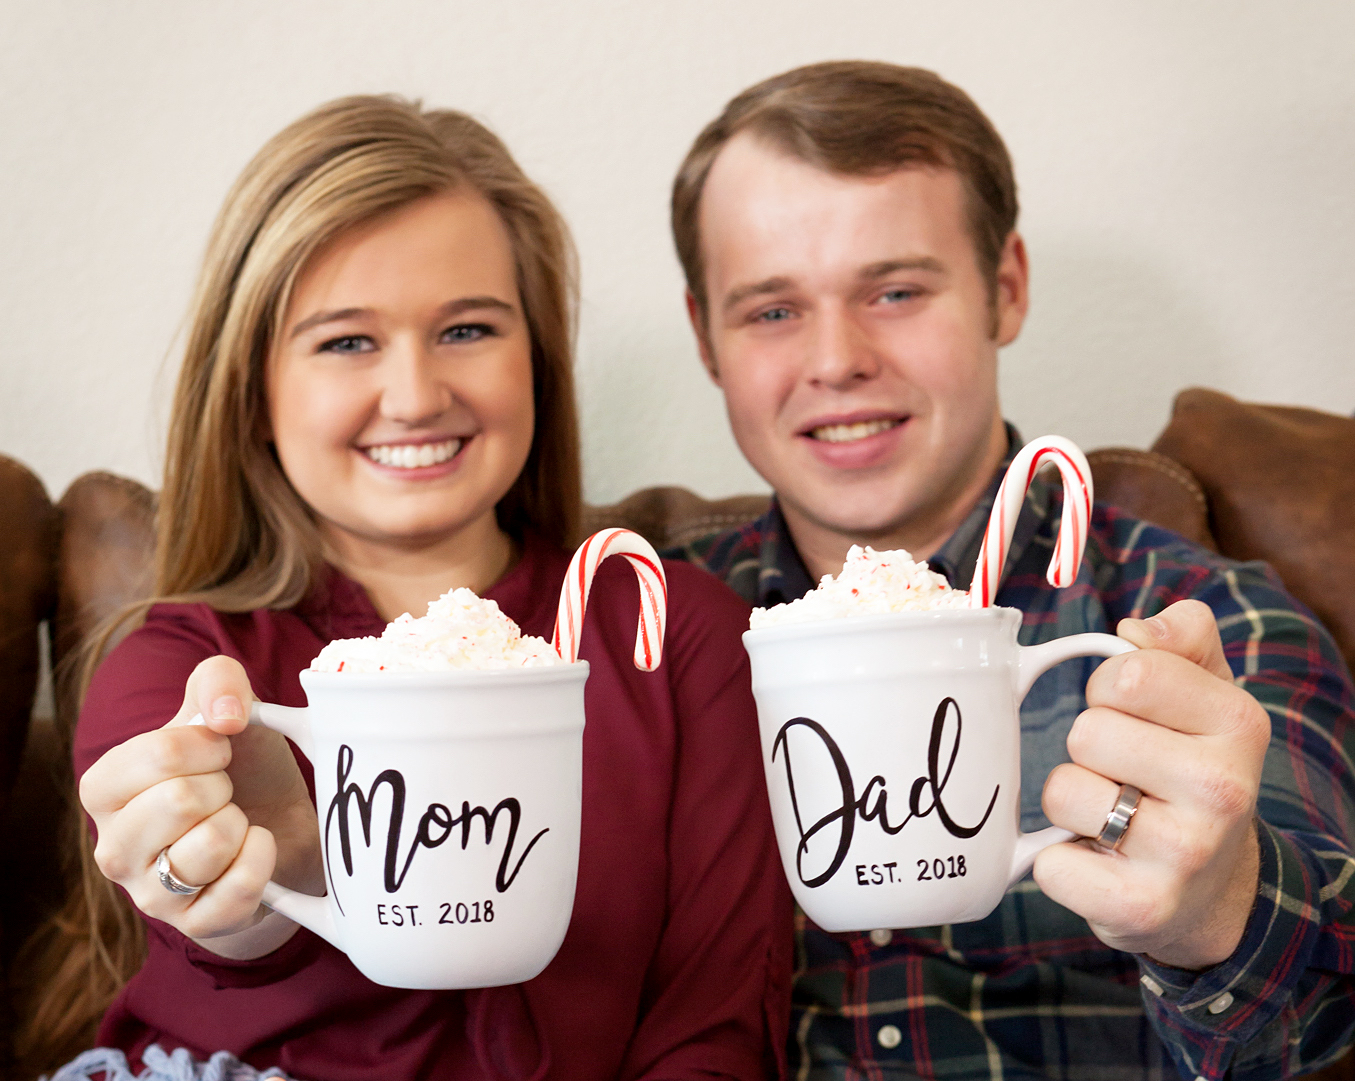 Joseph Und Joseph Joseph And Kendra Duggar Expecting Their First Child